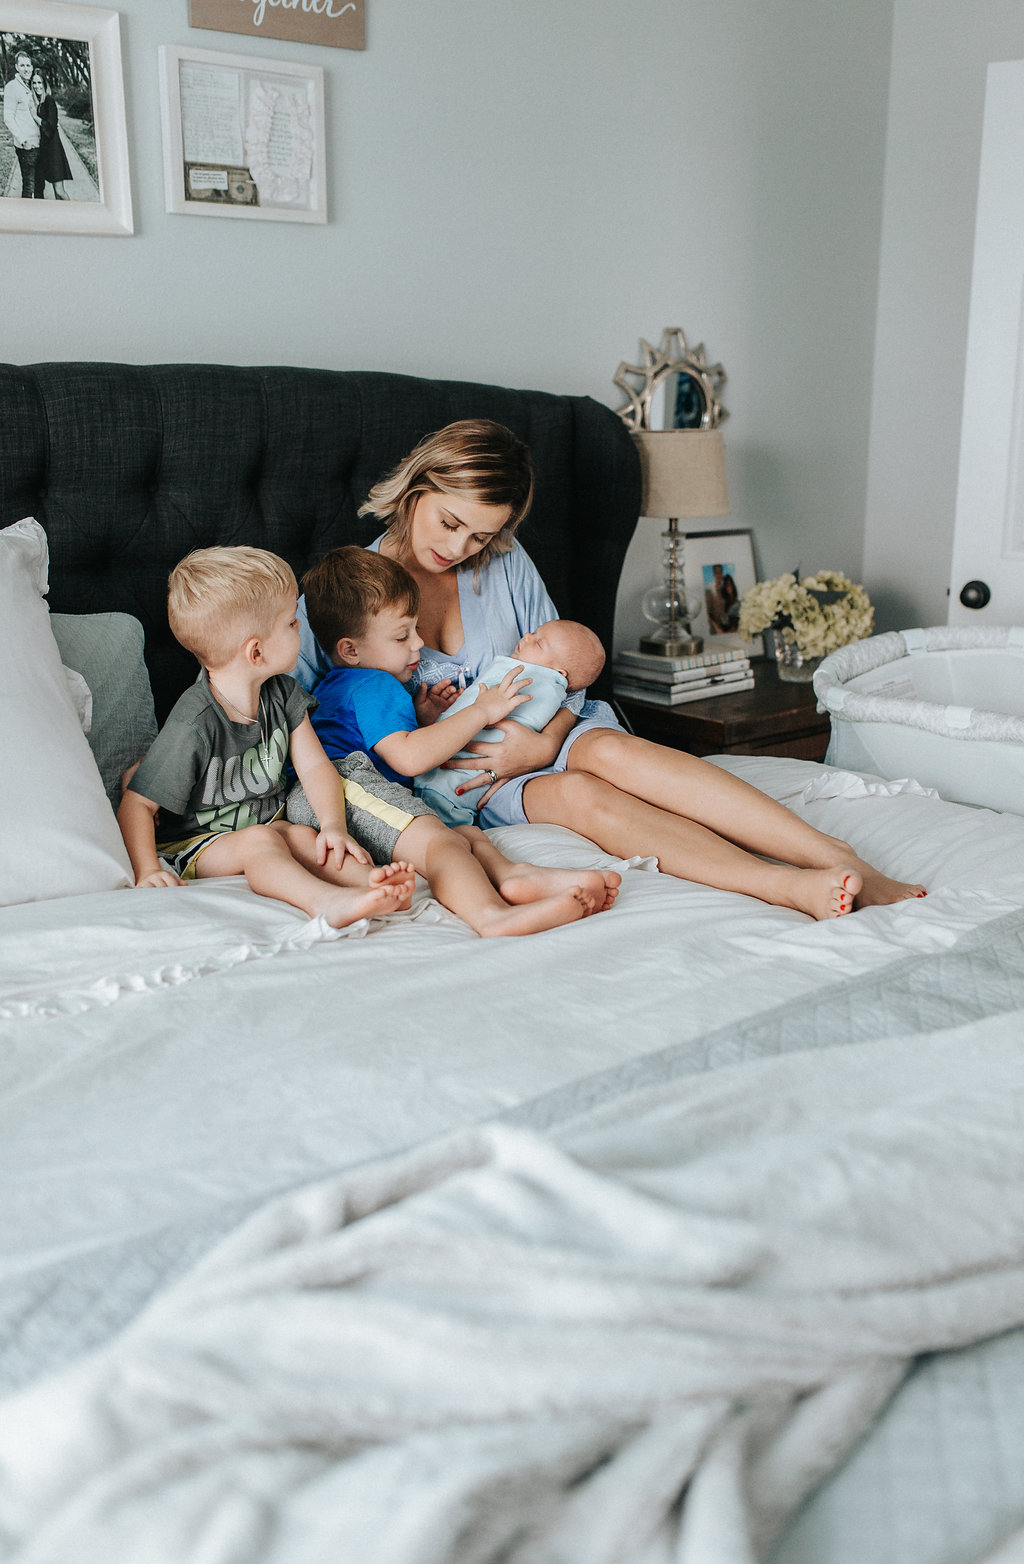 Safe Sleep for babies with Halo Sleep by Houston mom blogger Uptown with Elly Brown